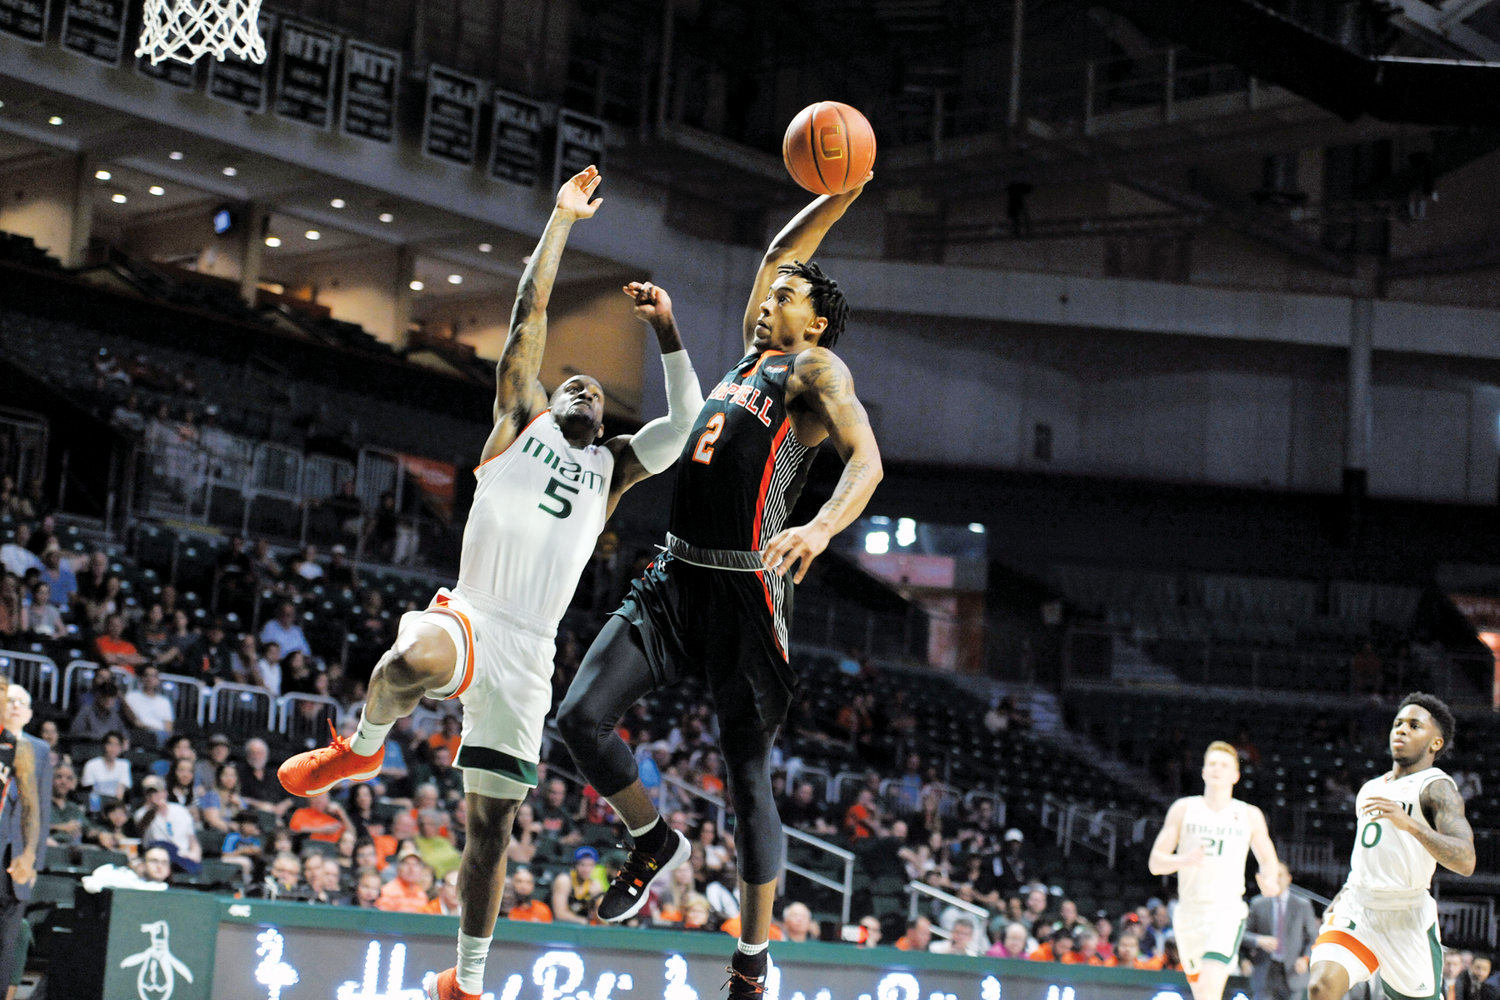 Ja'Cor Nelson drives to the basket for two of his 14 points in Campbell's loss at Miami on Saturday.